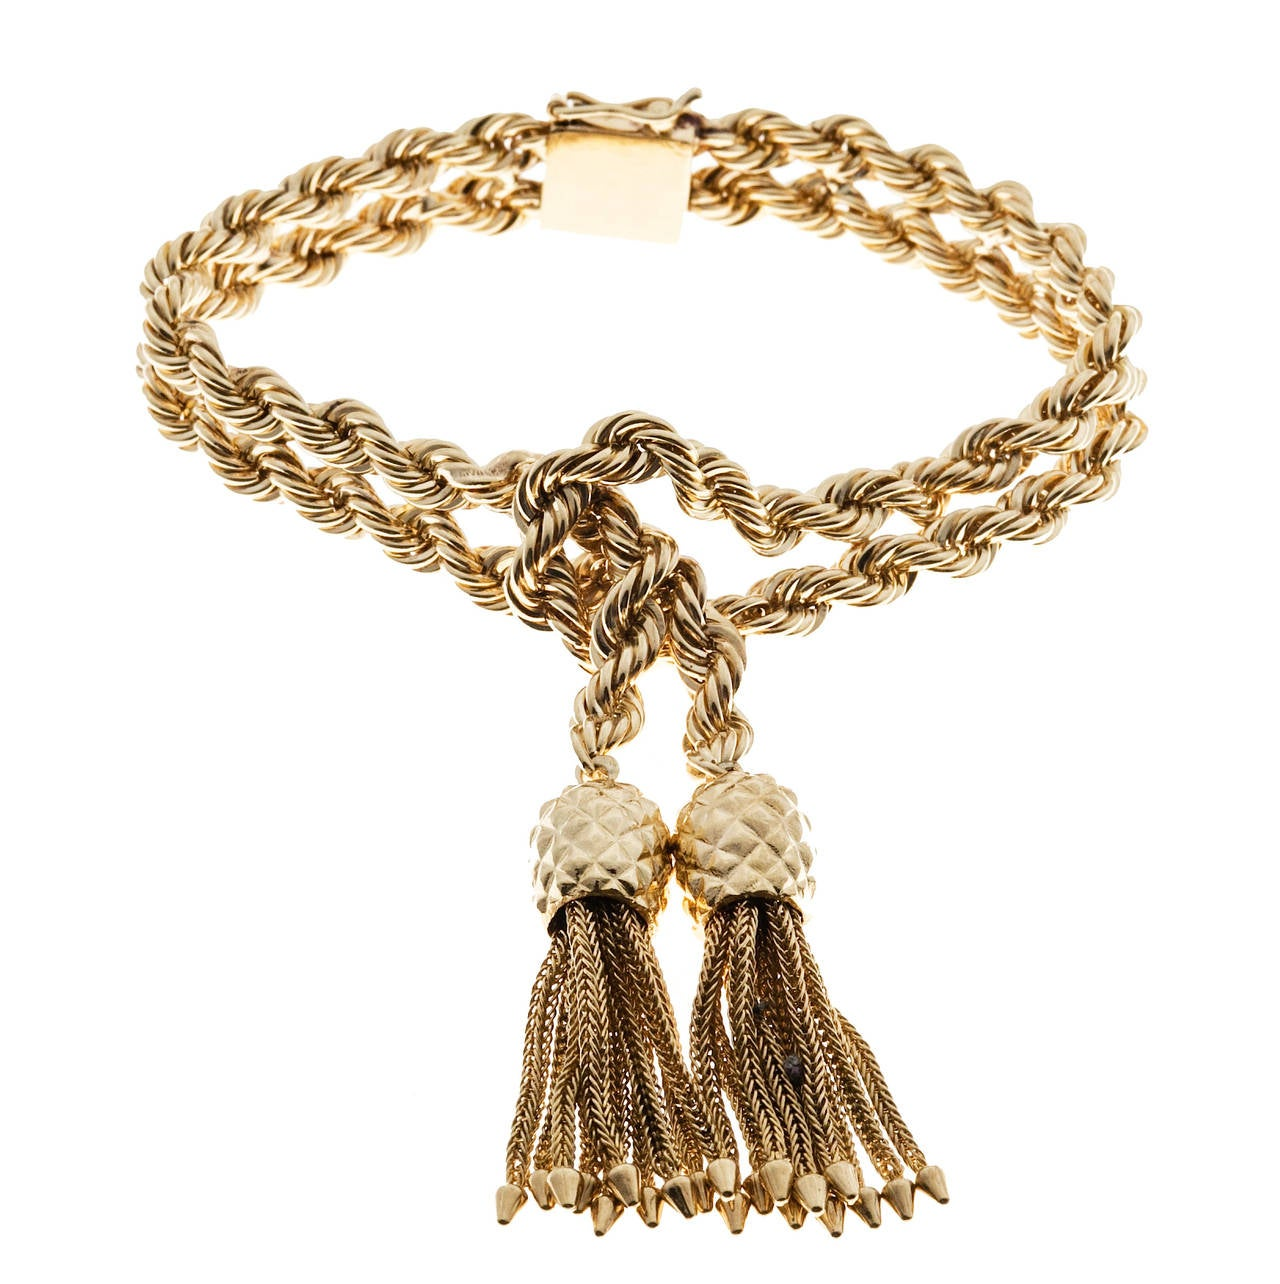 Tiffany & Co. Rope Knot Tassel Gold Bracelet 2